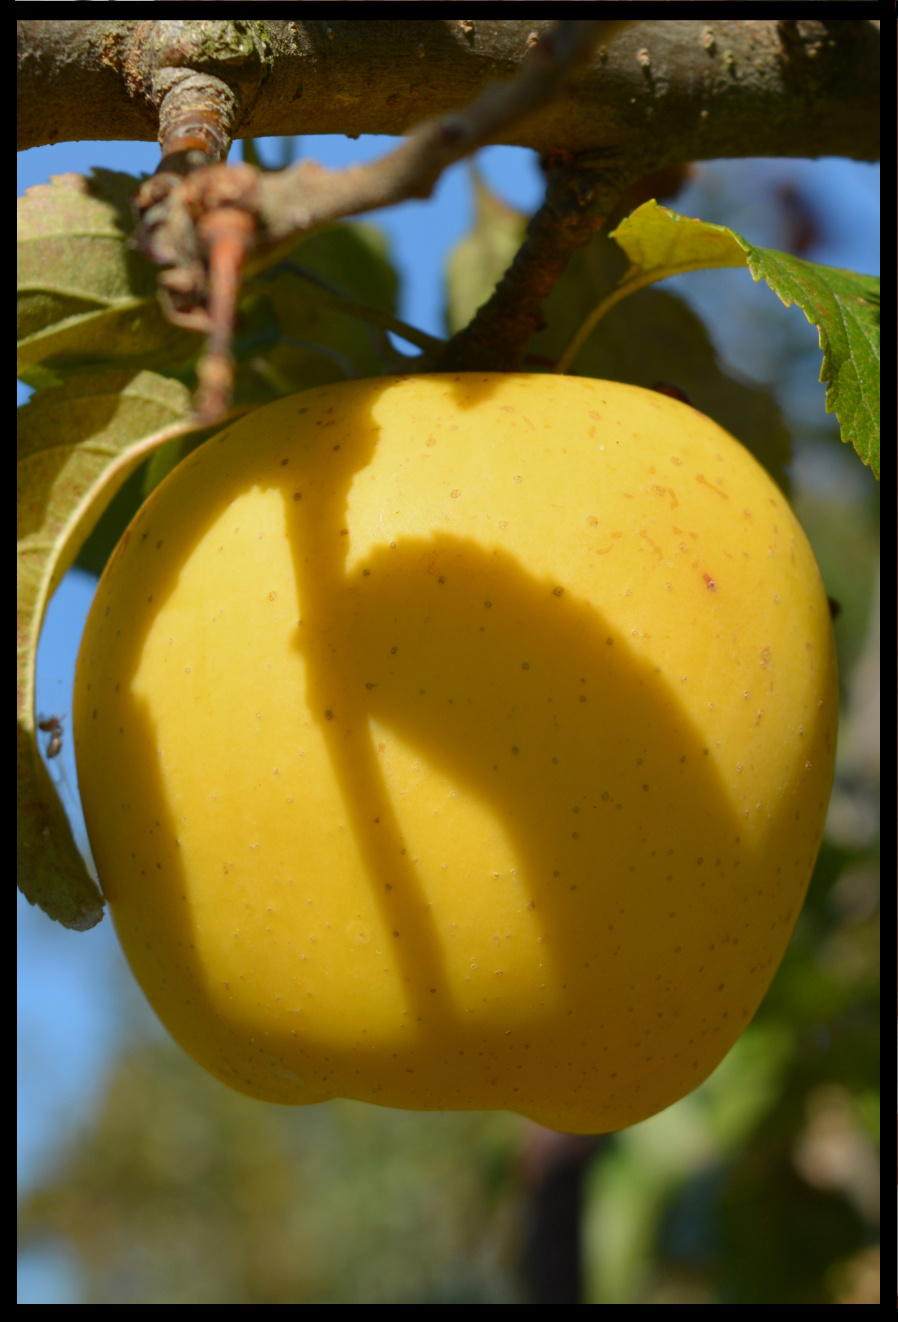 yellow apple with small brown dots